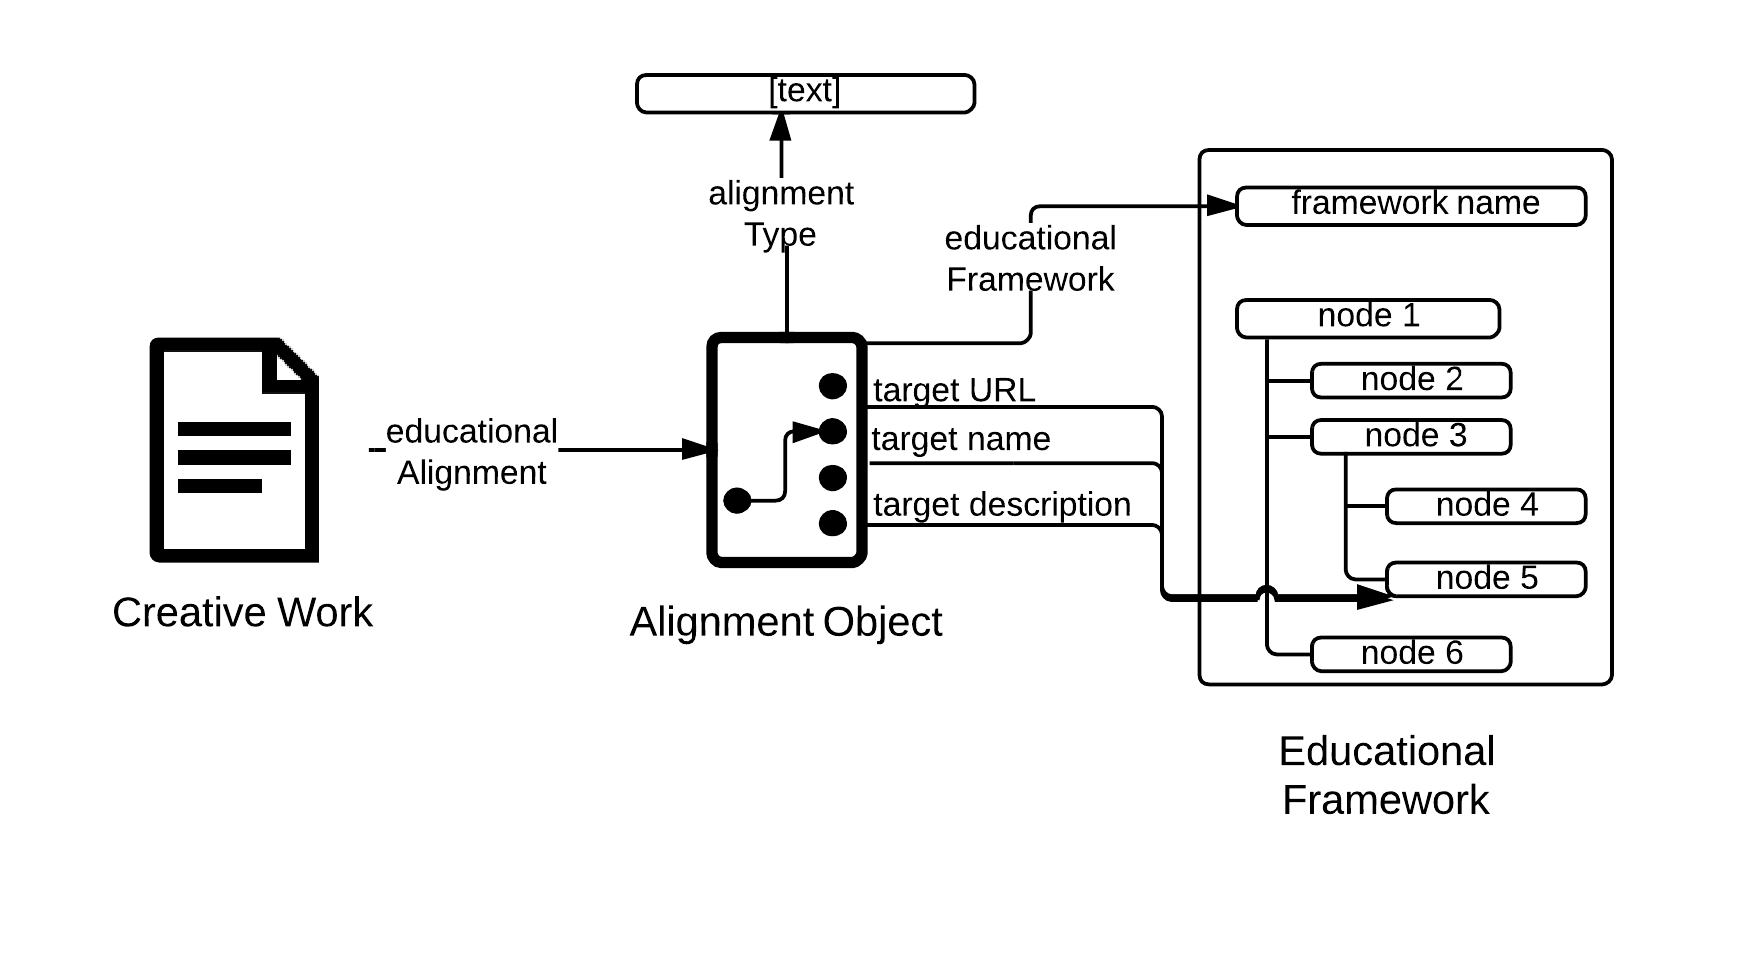 The creative work aligns with a node in an educational framework the alignment object identifies